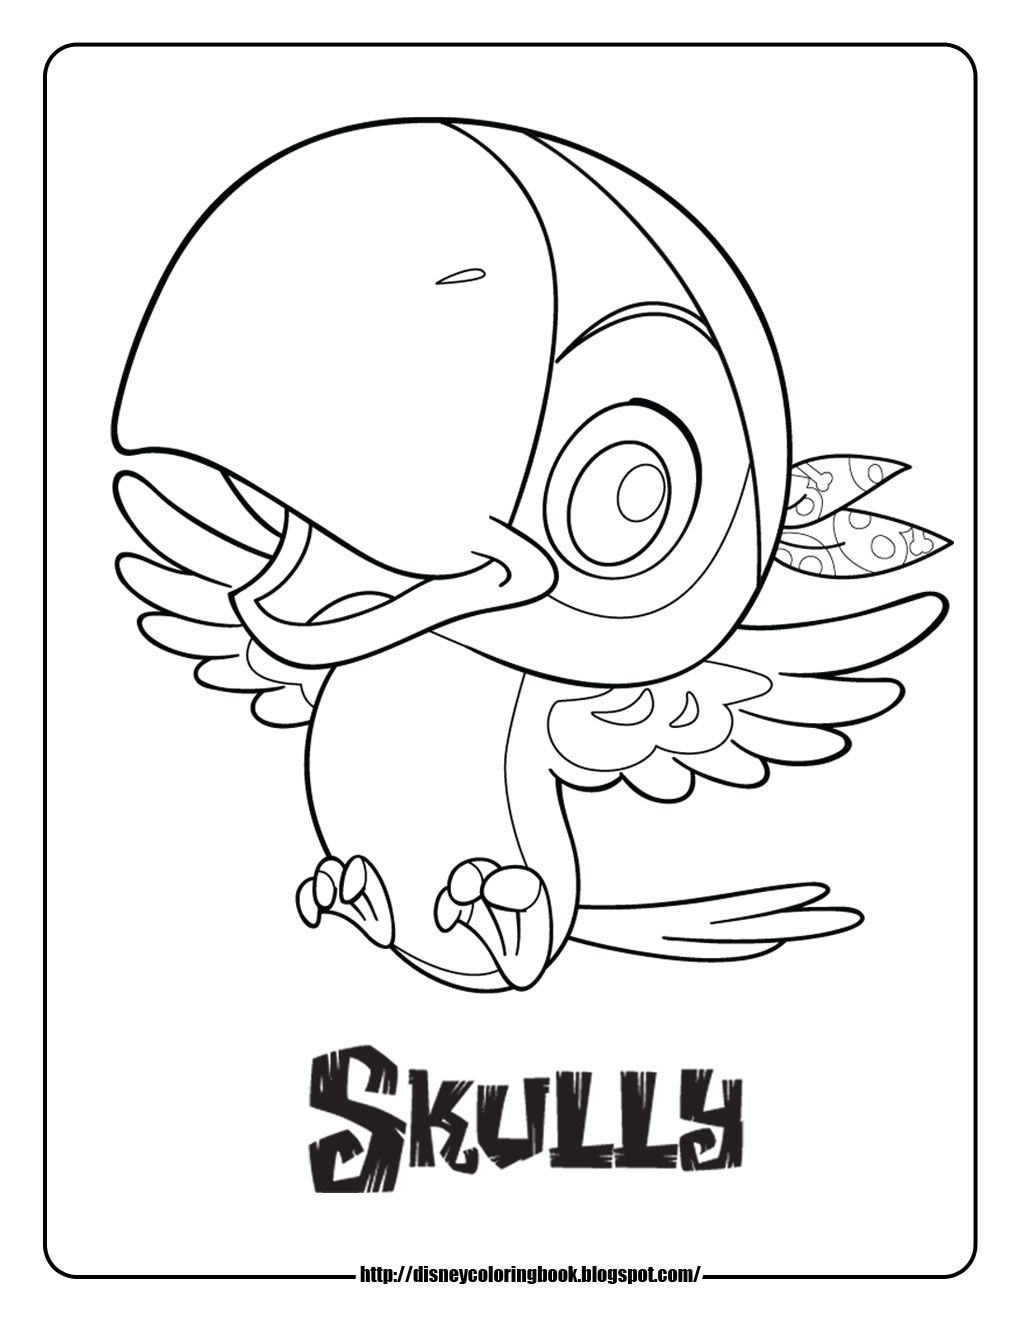 Free disney junior colouring pages - Jake And The Never Land Pirates Coloring Pages Coloring Sheets Skully